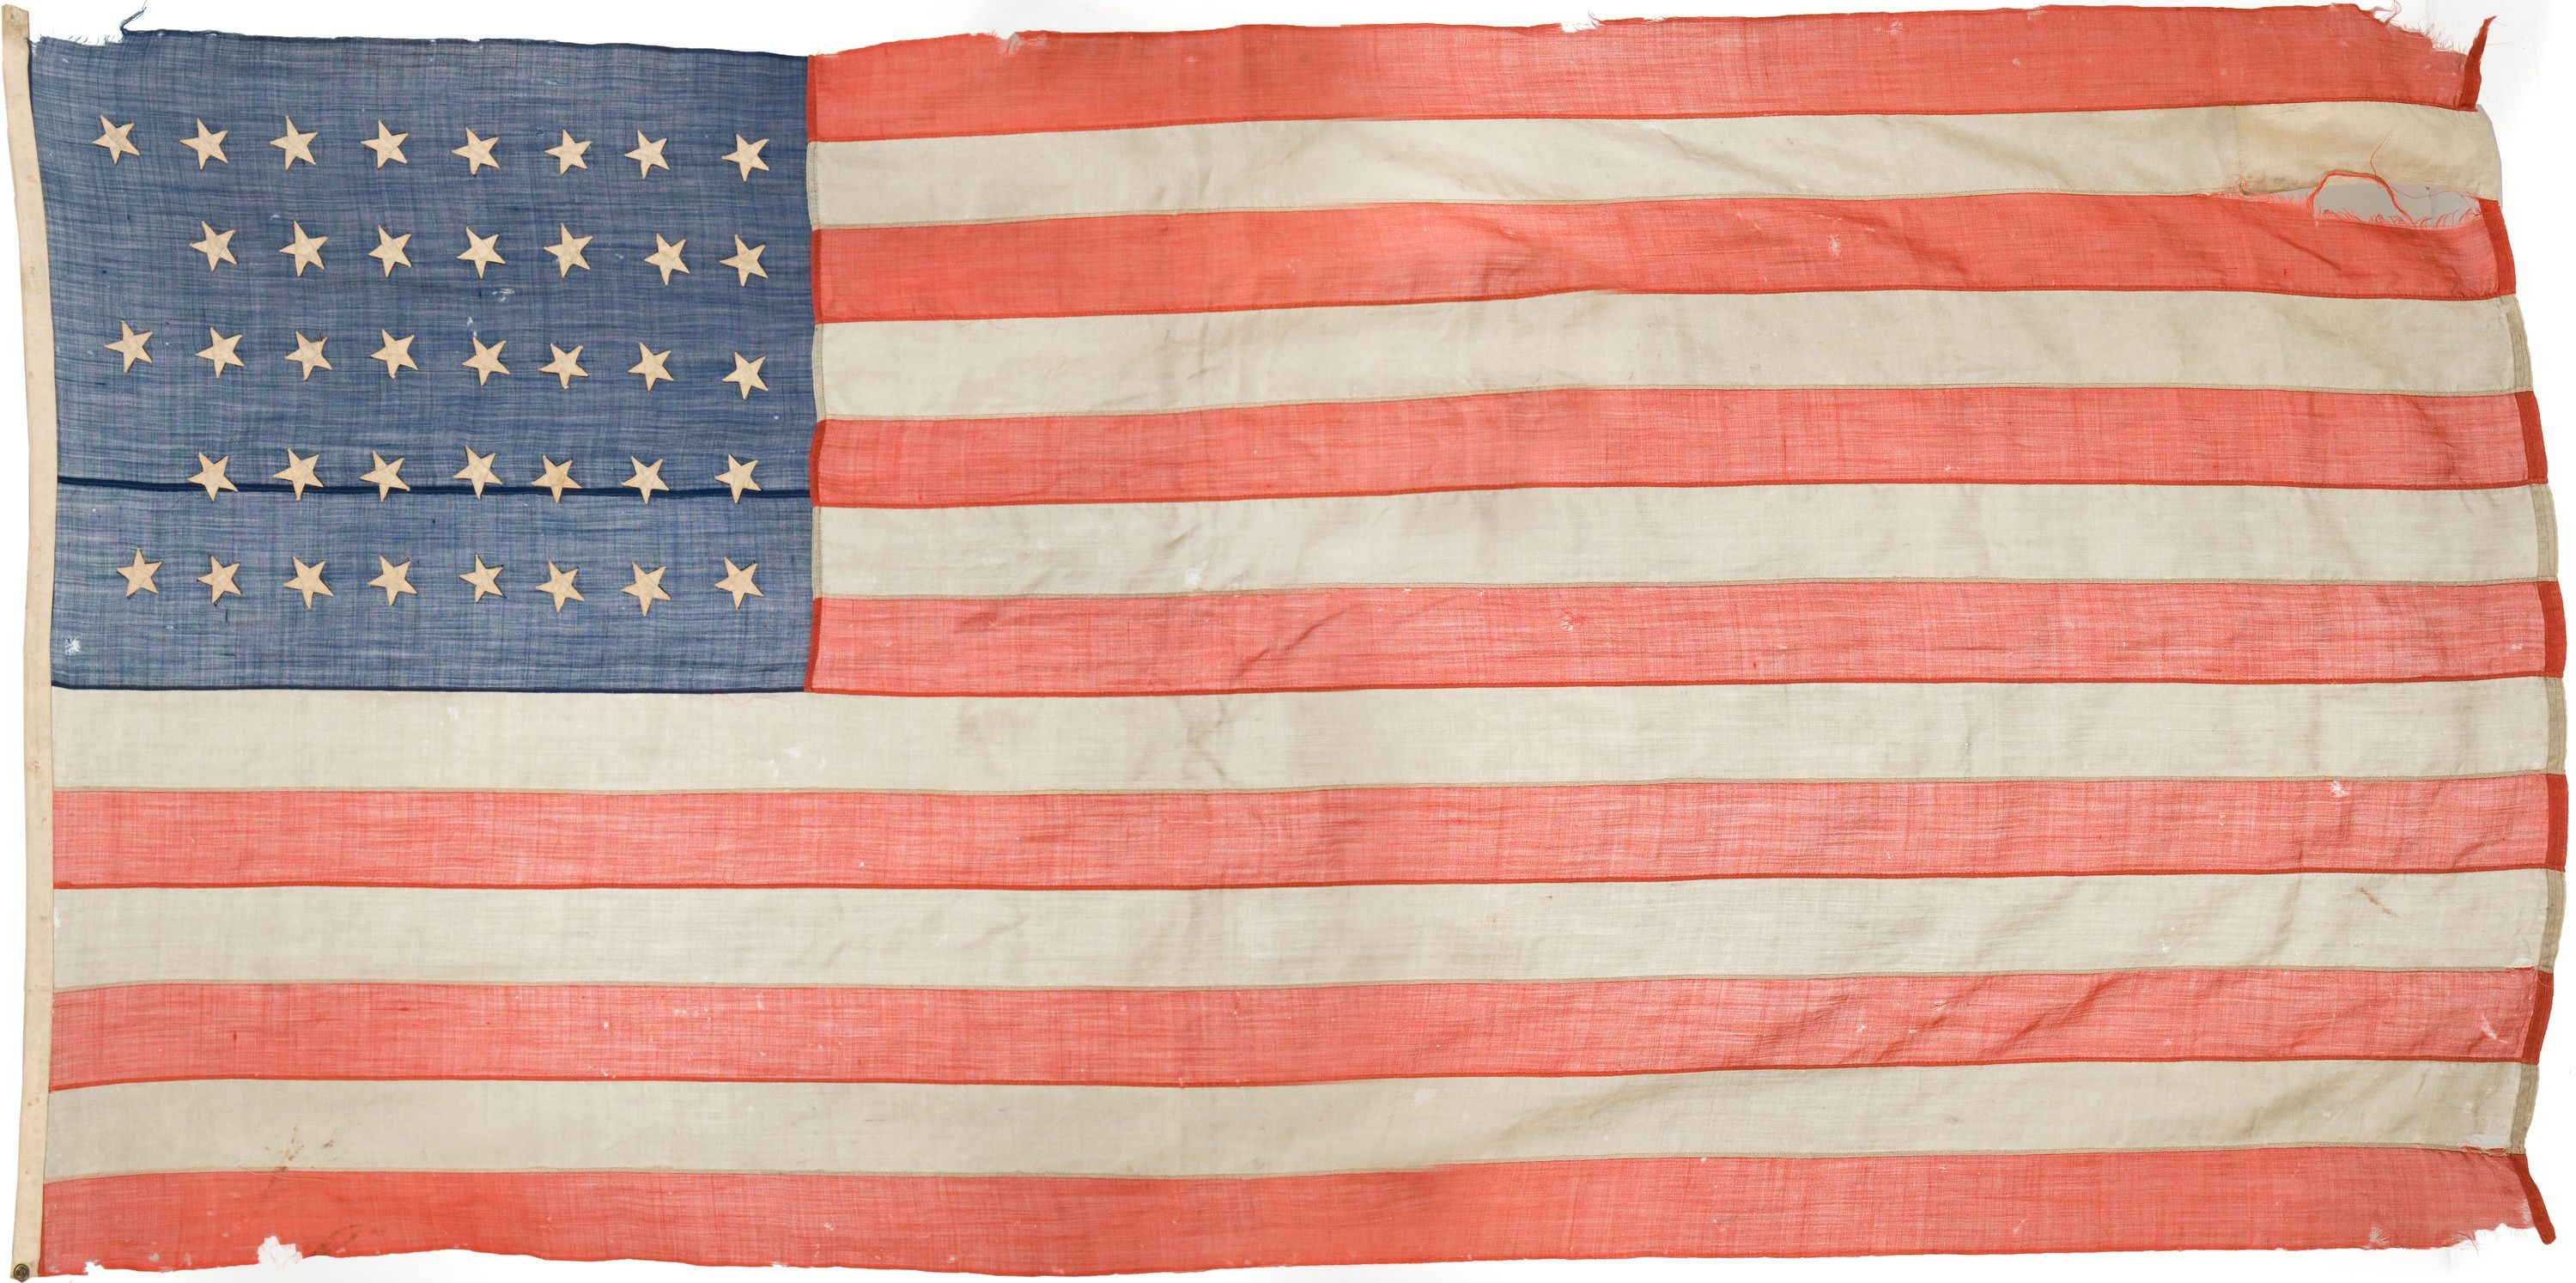 38 Star Us Garrison Flag Possibily From Fort Abraham Lincoln Flag Flags Of The World Country Flags